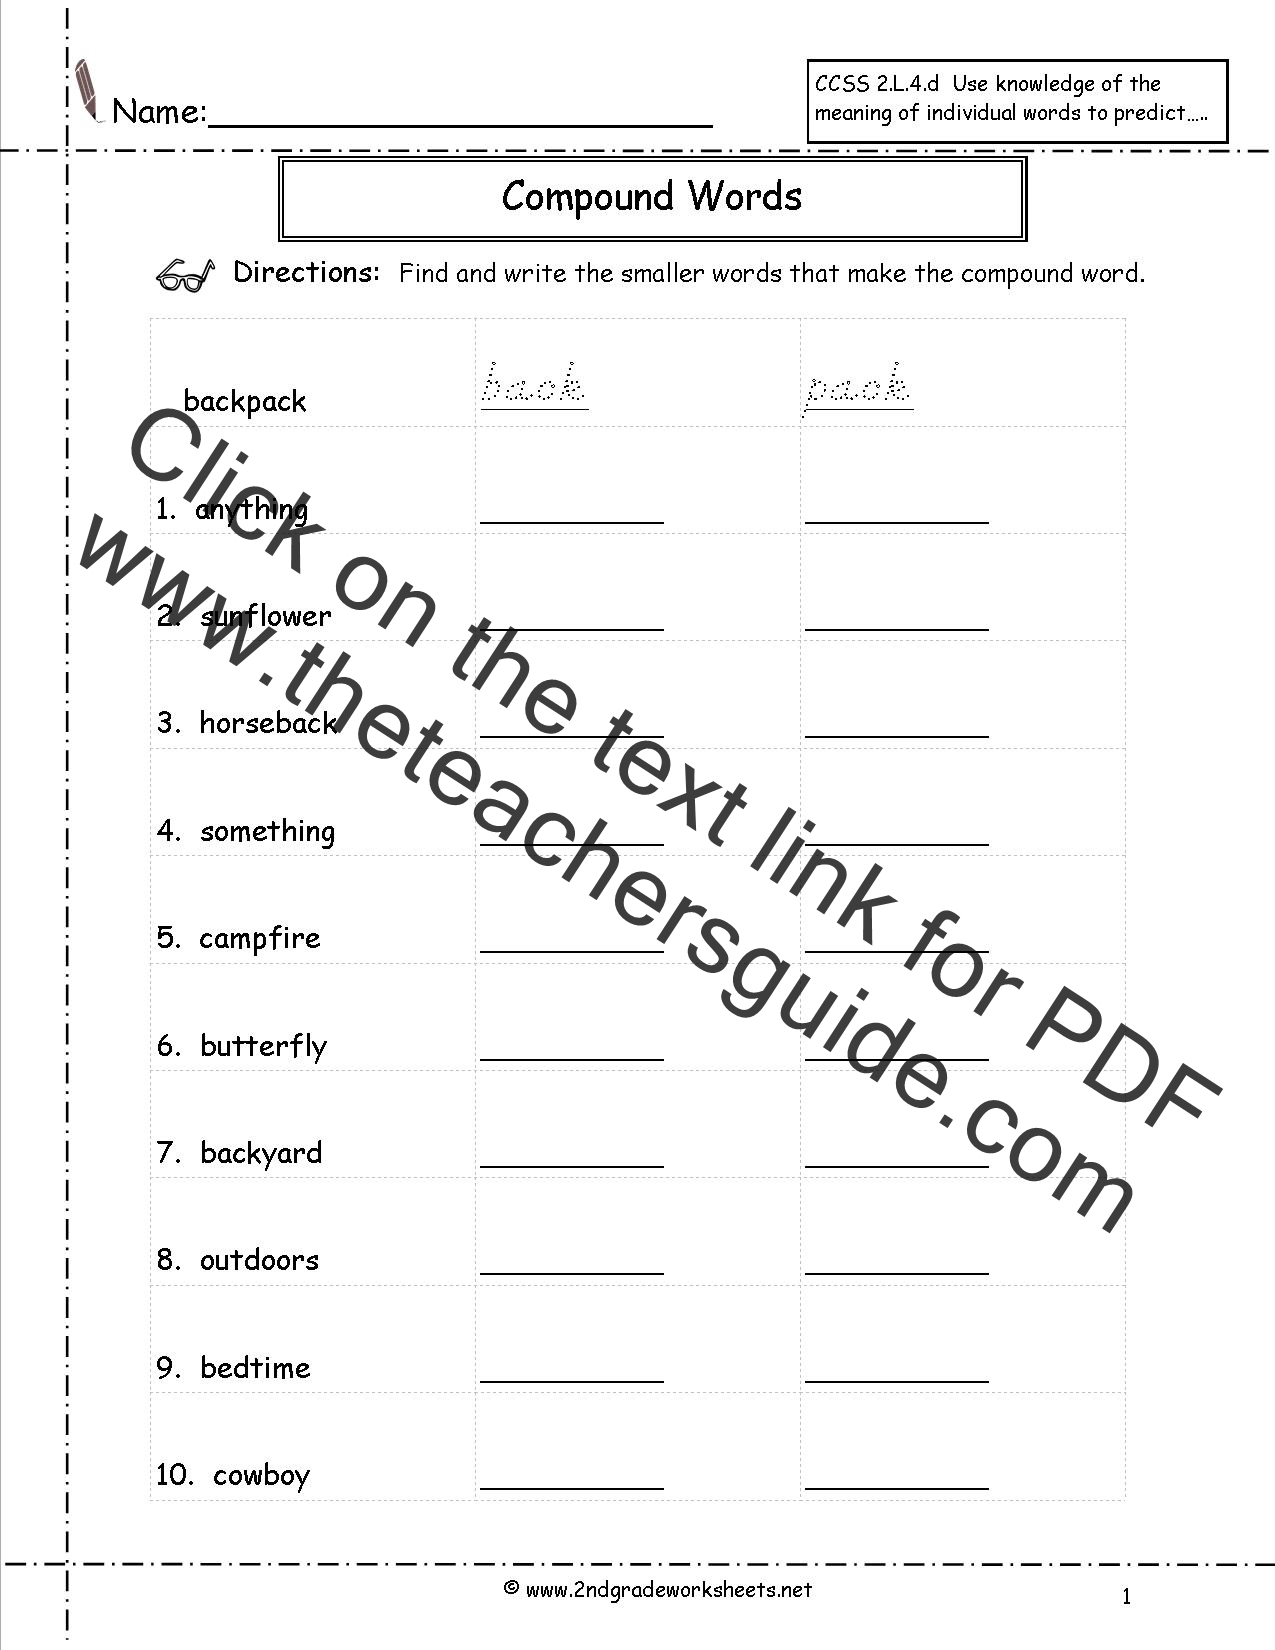 Worksheets Grammar Worksheets Second Grade free languagegrammar worksheets and printouts compound words worksheets